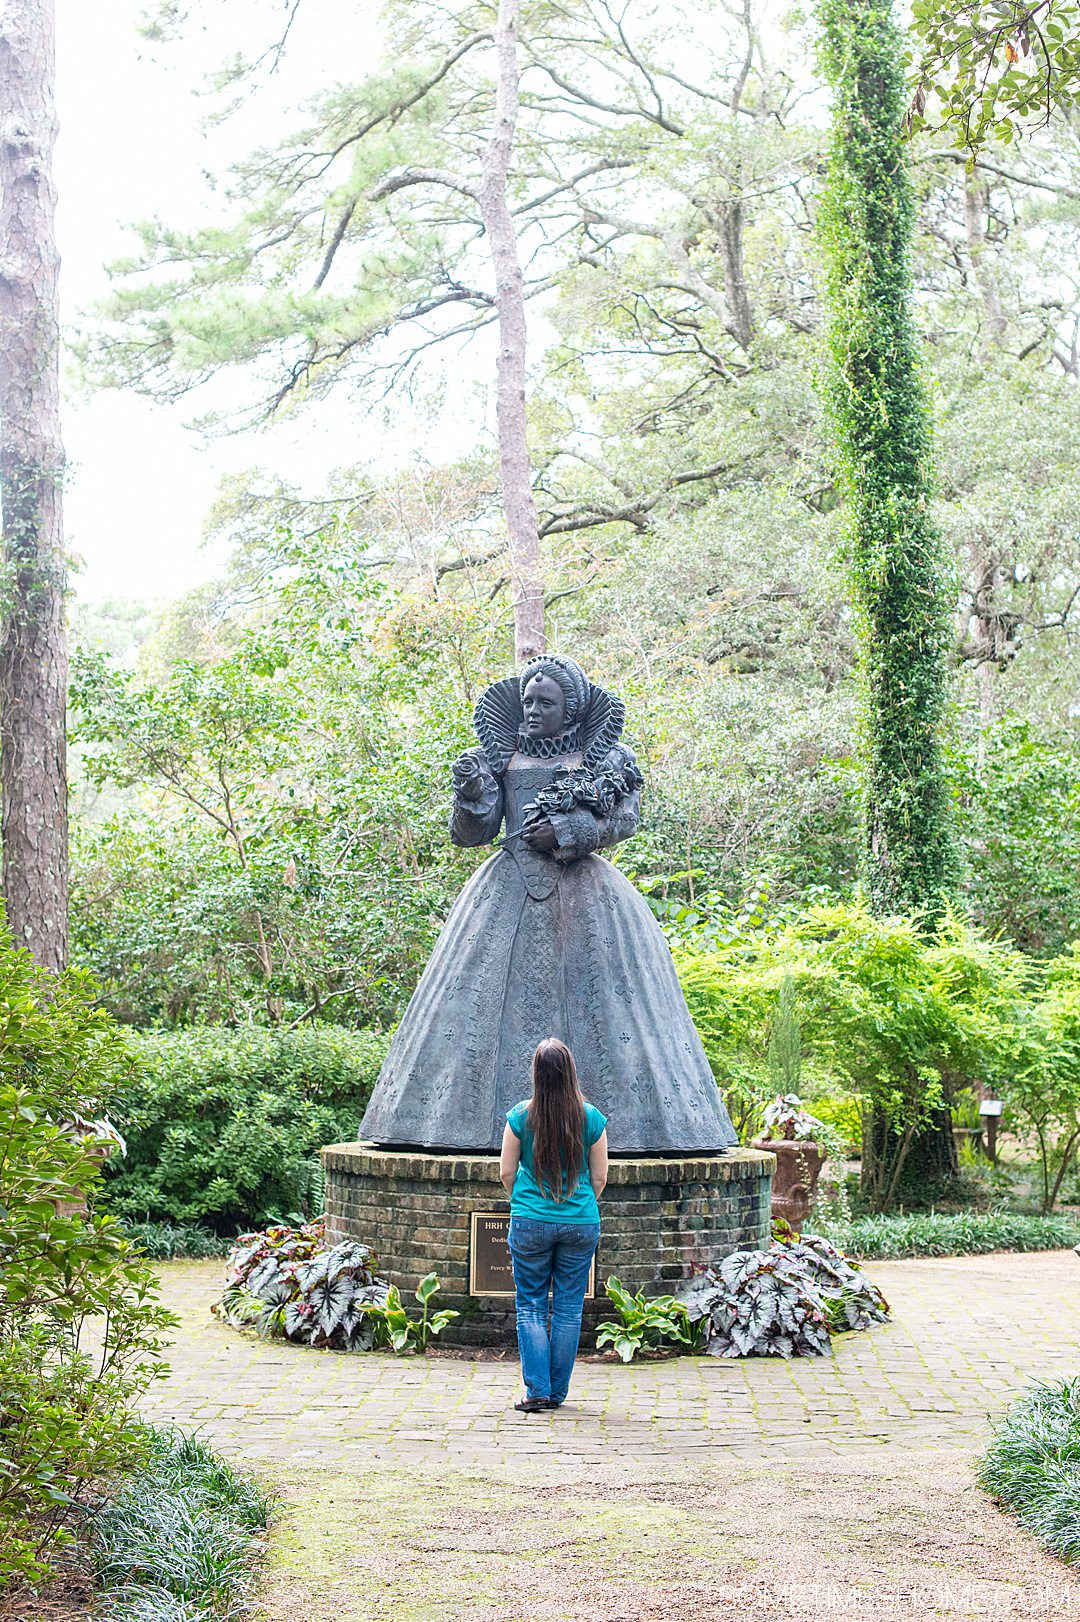 A statue of Elizabeth I at the Elizabethan Gardens in the Outer Banks in October.